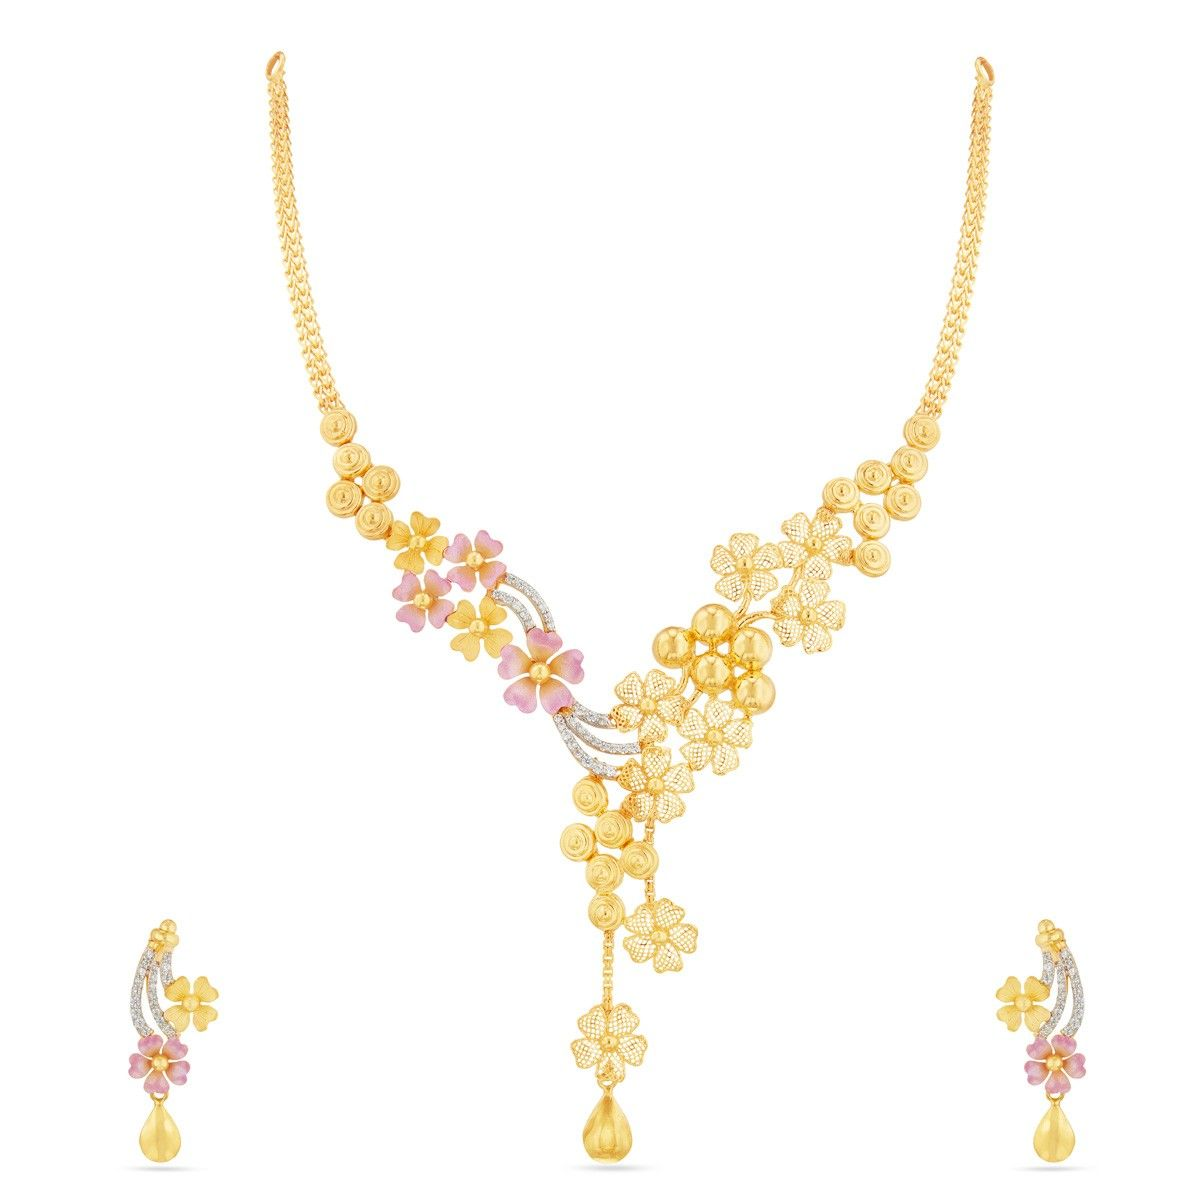 light-weight-gold-necklace-designs-with-price-in-rupees.jpg (1200 ...